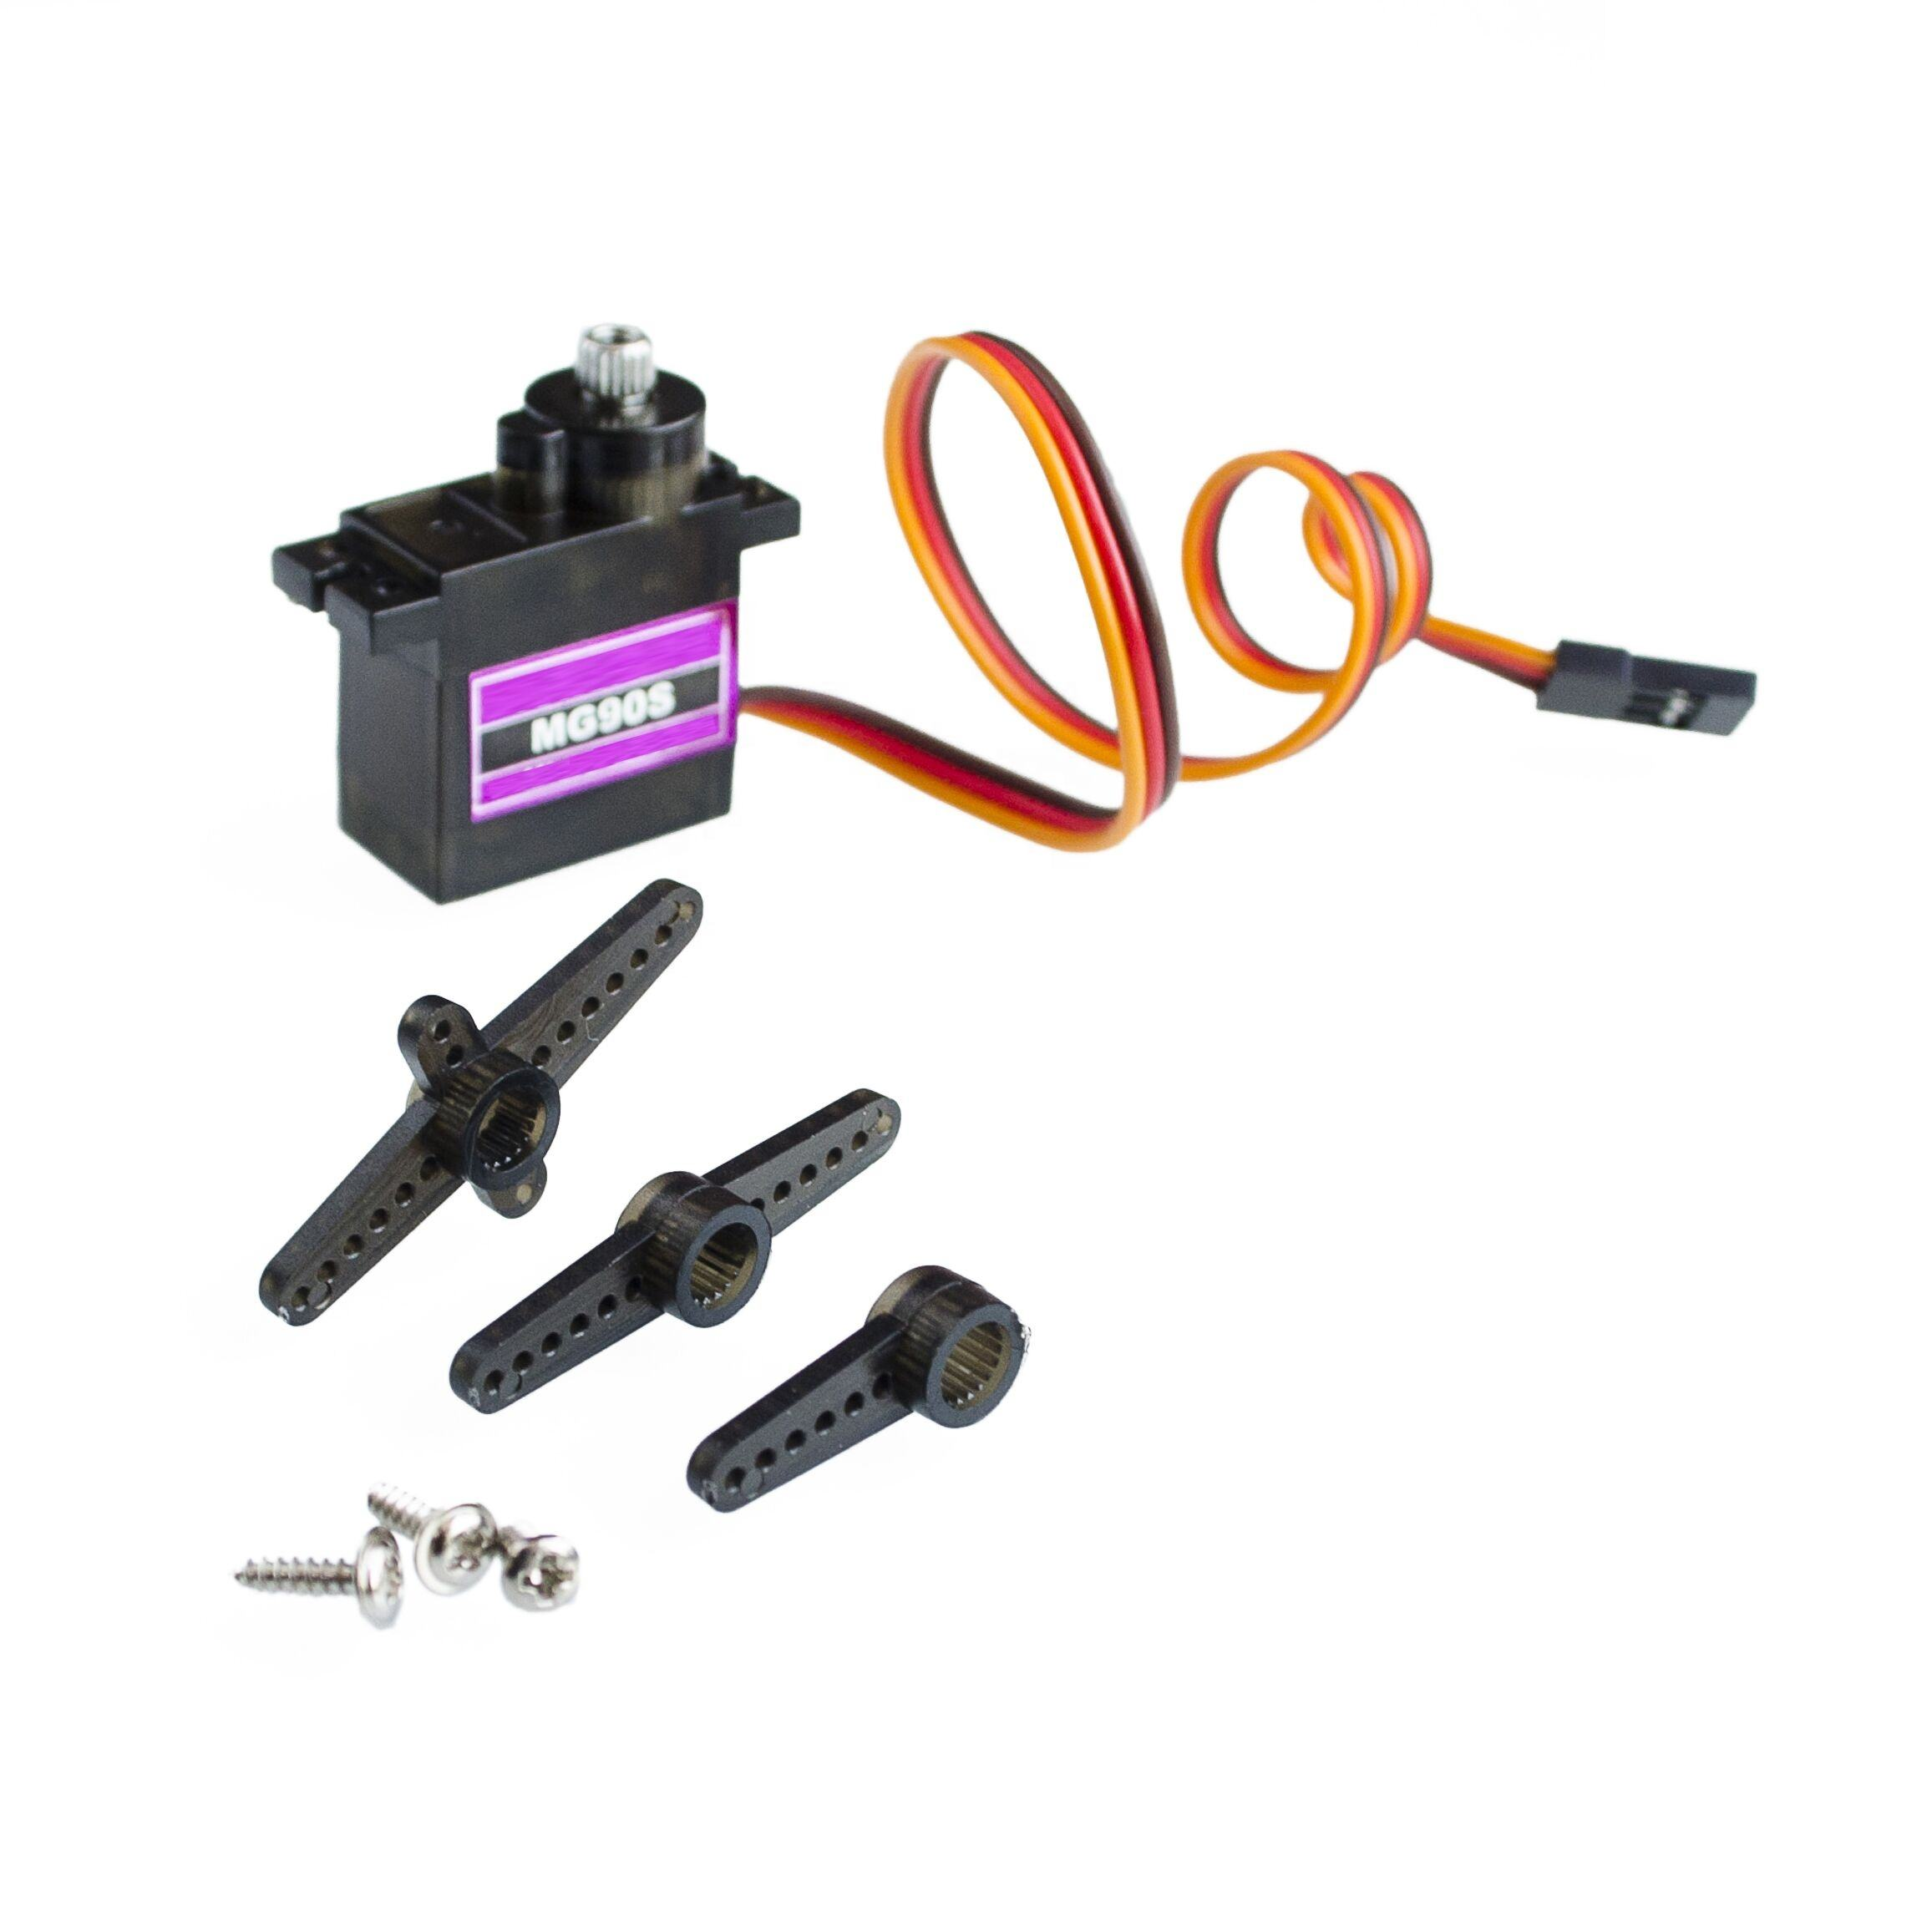 MG90S Metal Geared Micro Tower Pro Servo voor Speelgoed Boot Auto Vliegtuig Helicopter